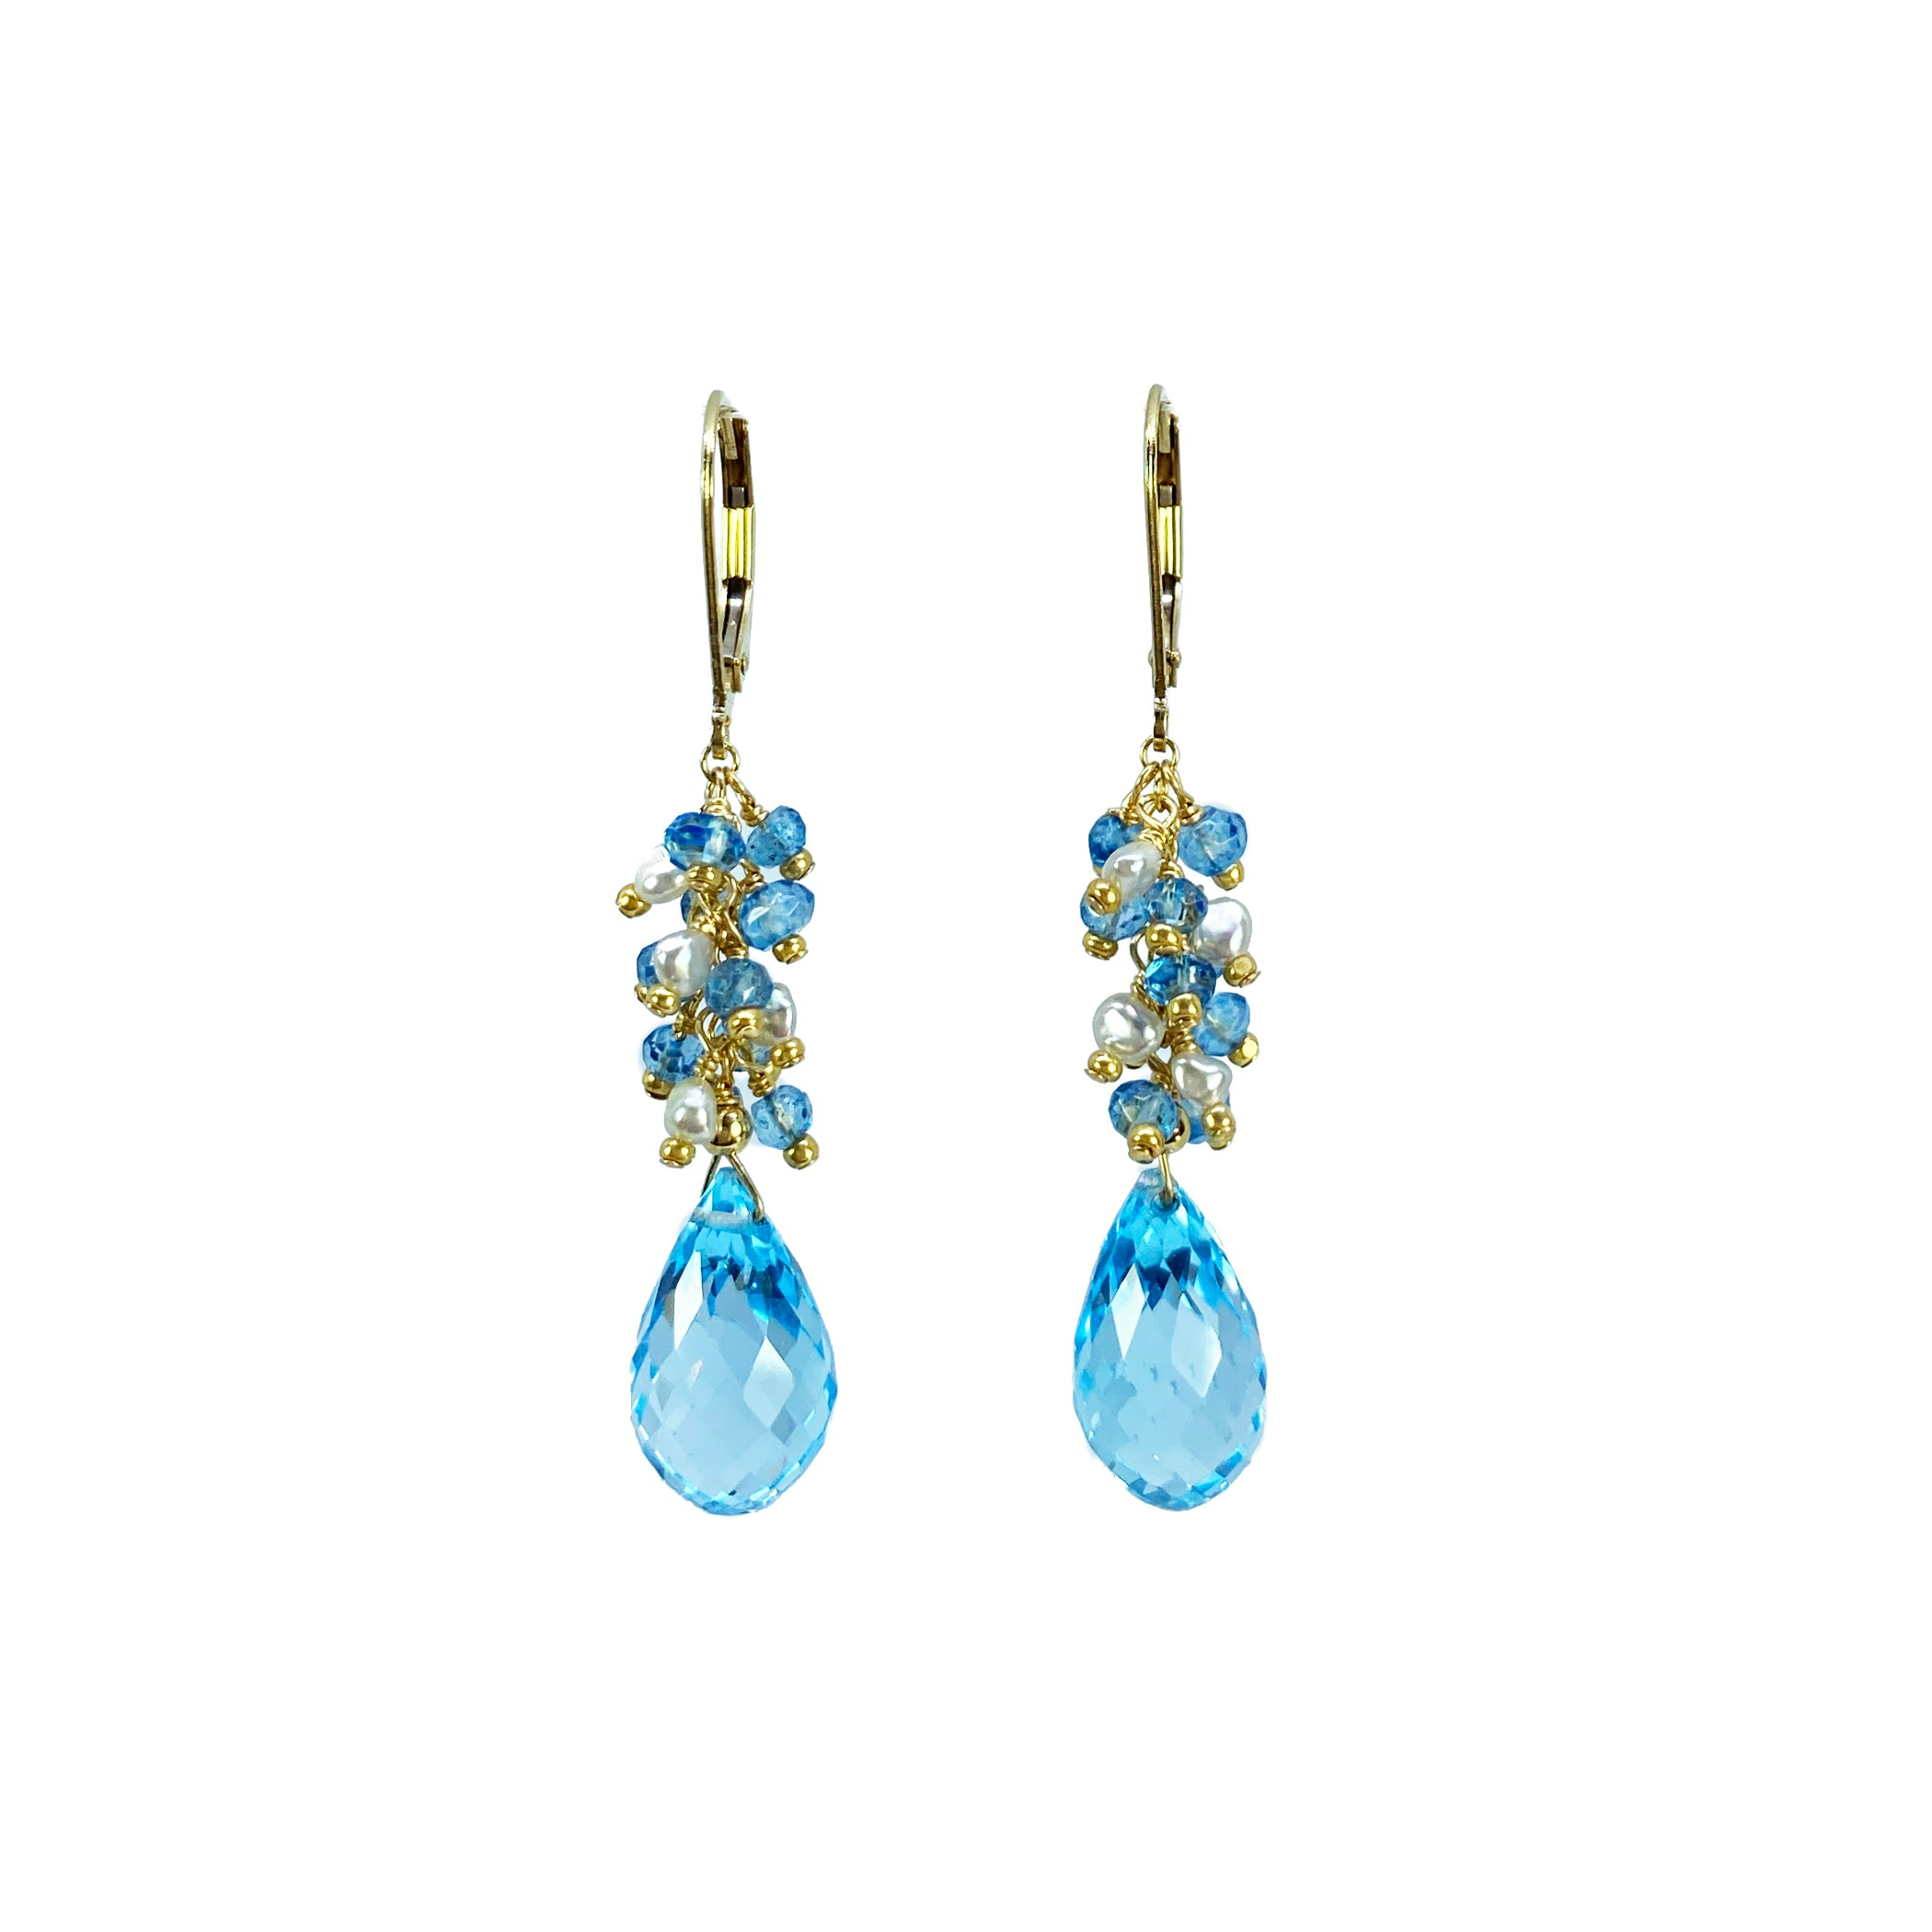 Blue Topaz and Akoya Keshi Pearls